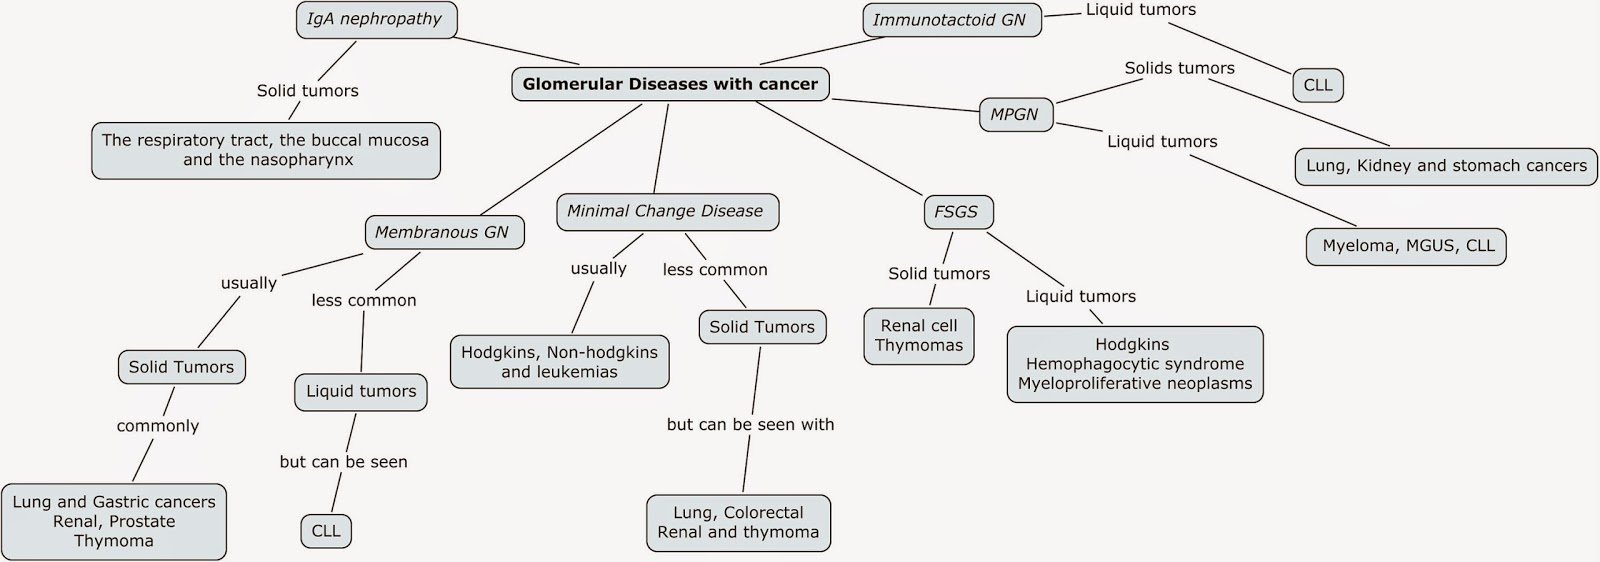 Nephron Power Concept Map Glomerular Diseases Seen With Cancer